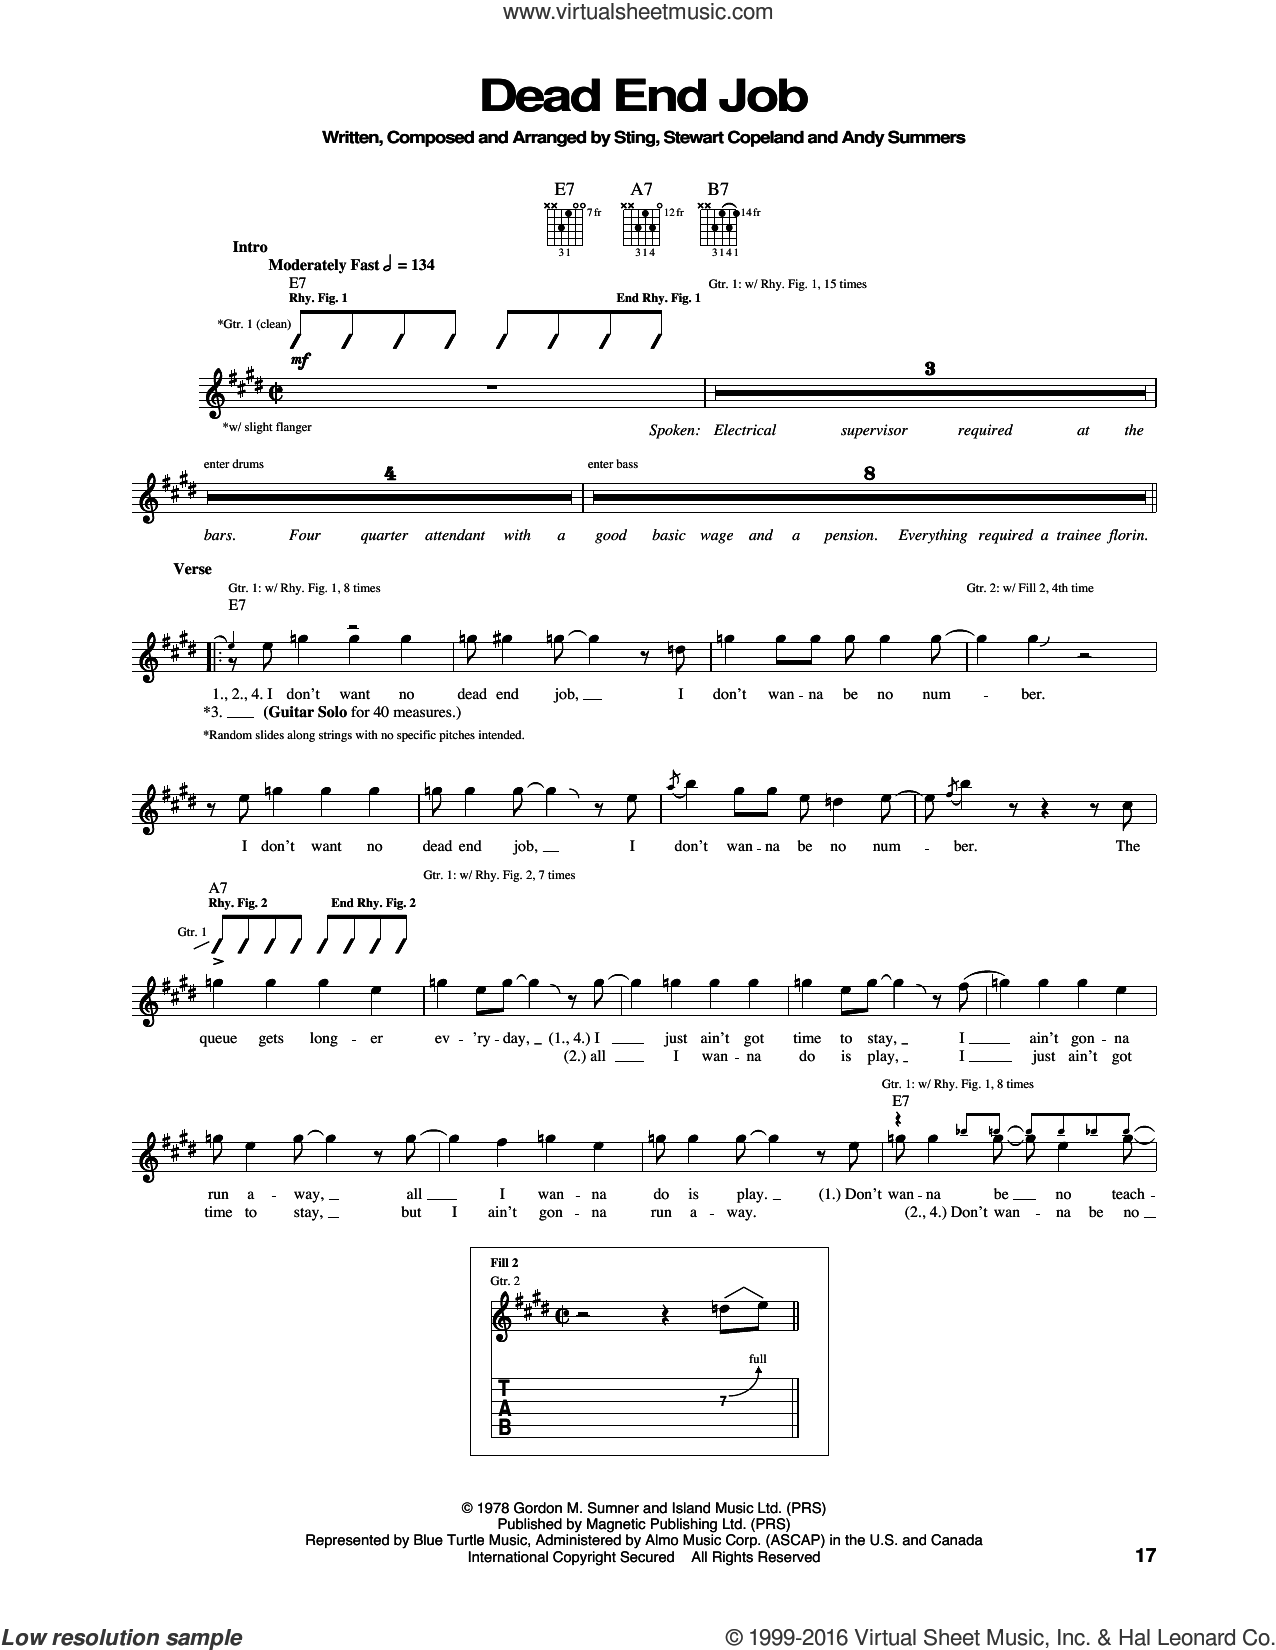 Dead End Job sheet music for guitar (tablature) by Sting